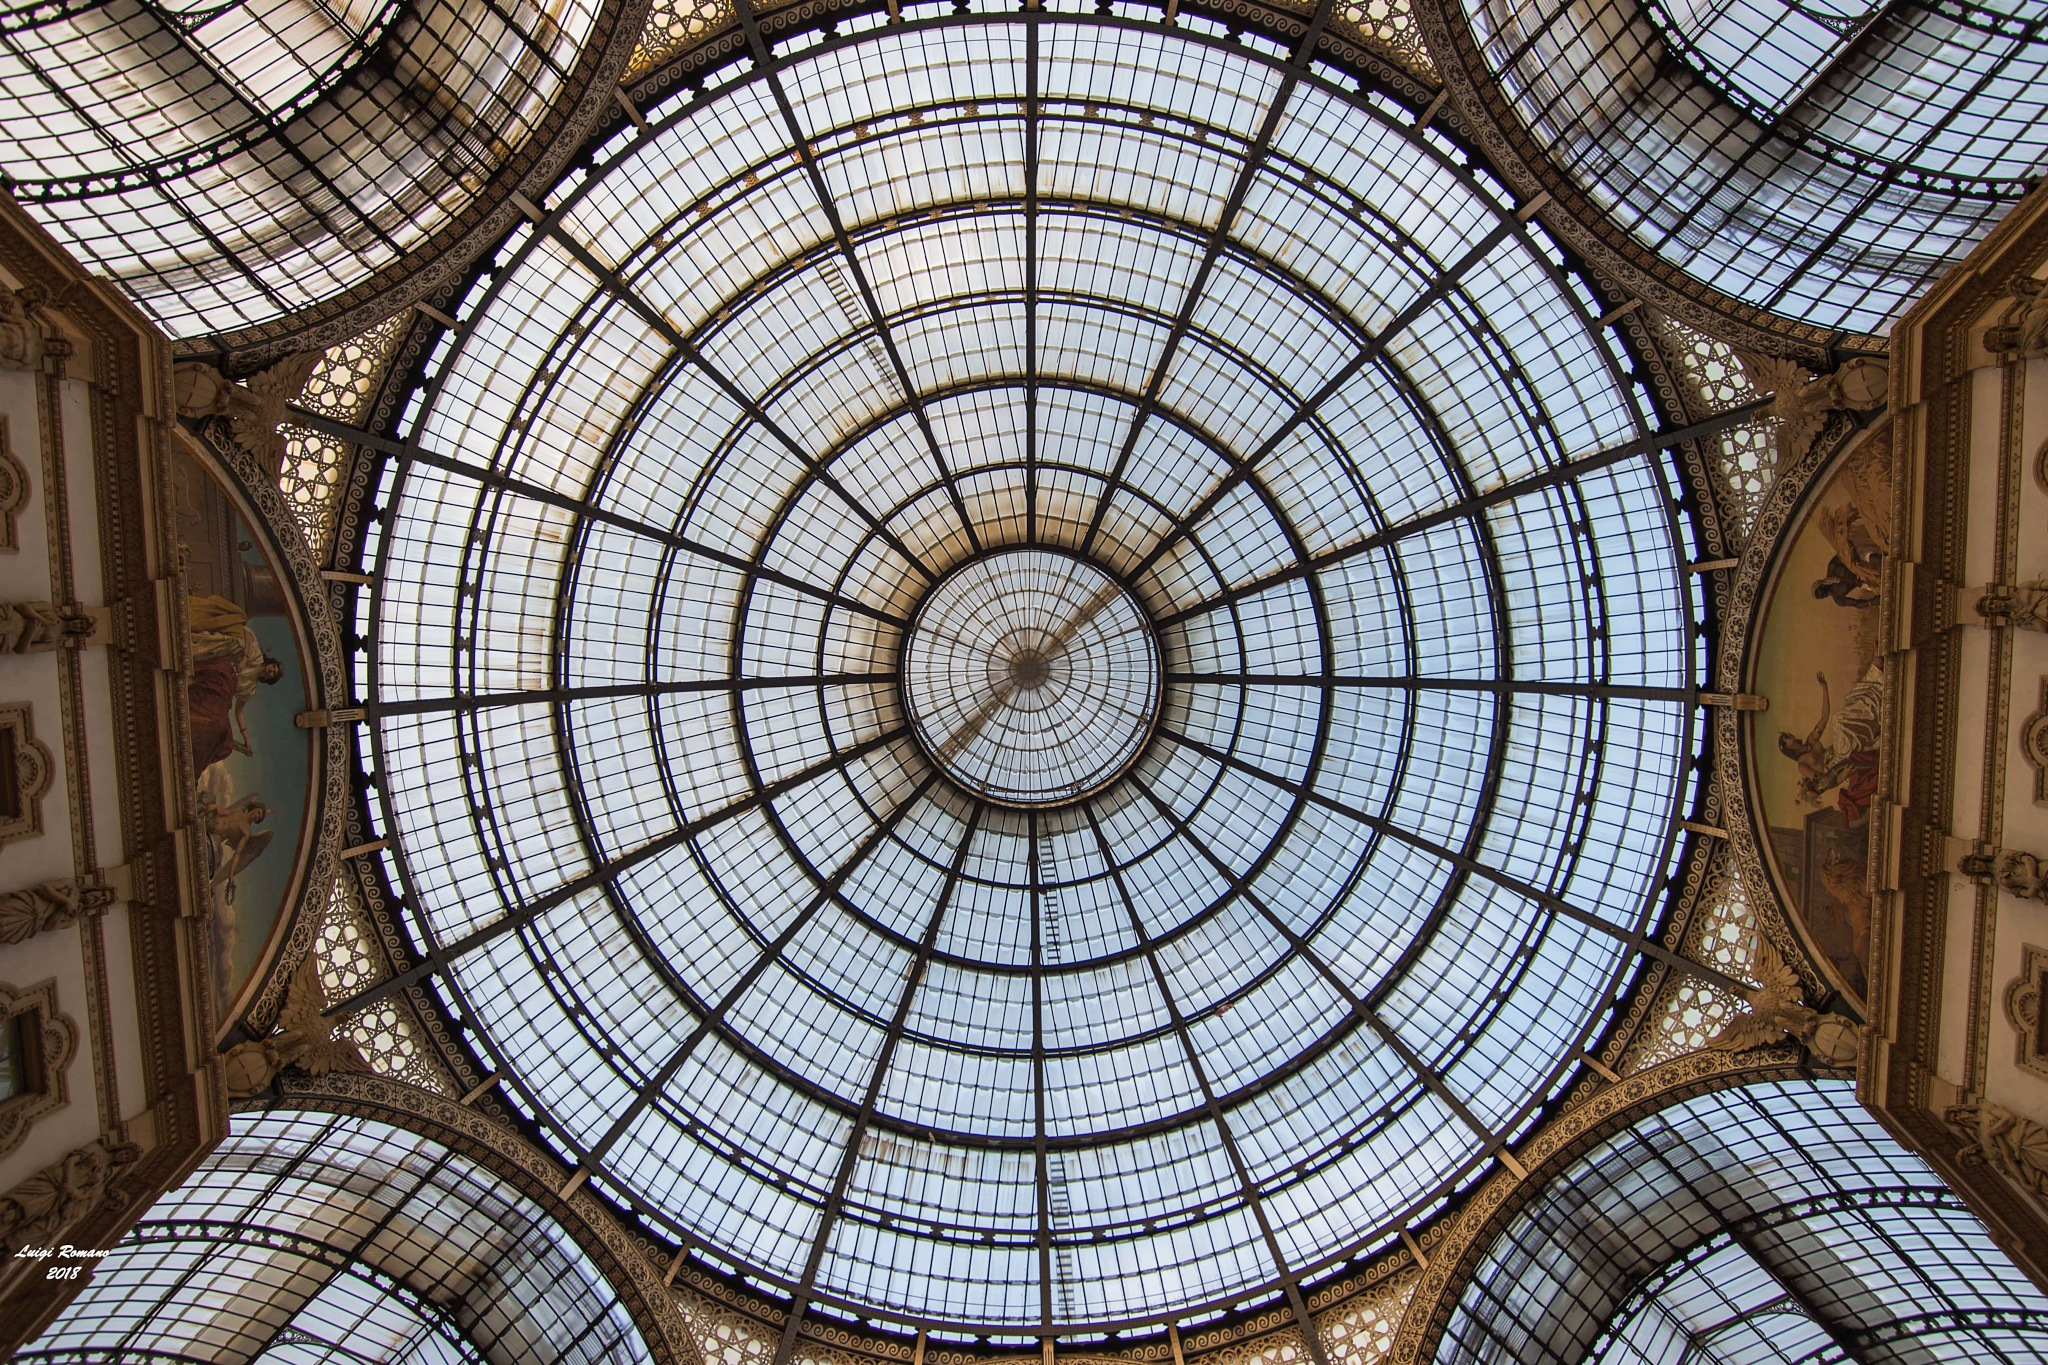 The dome of the Galleria Vittorio Emanuele in Milan by Luigi Romano